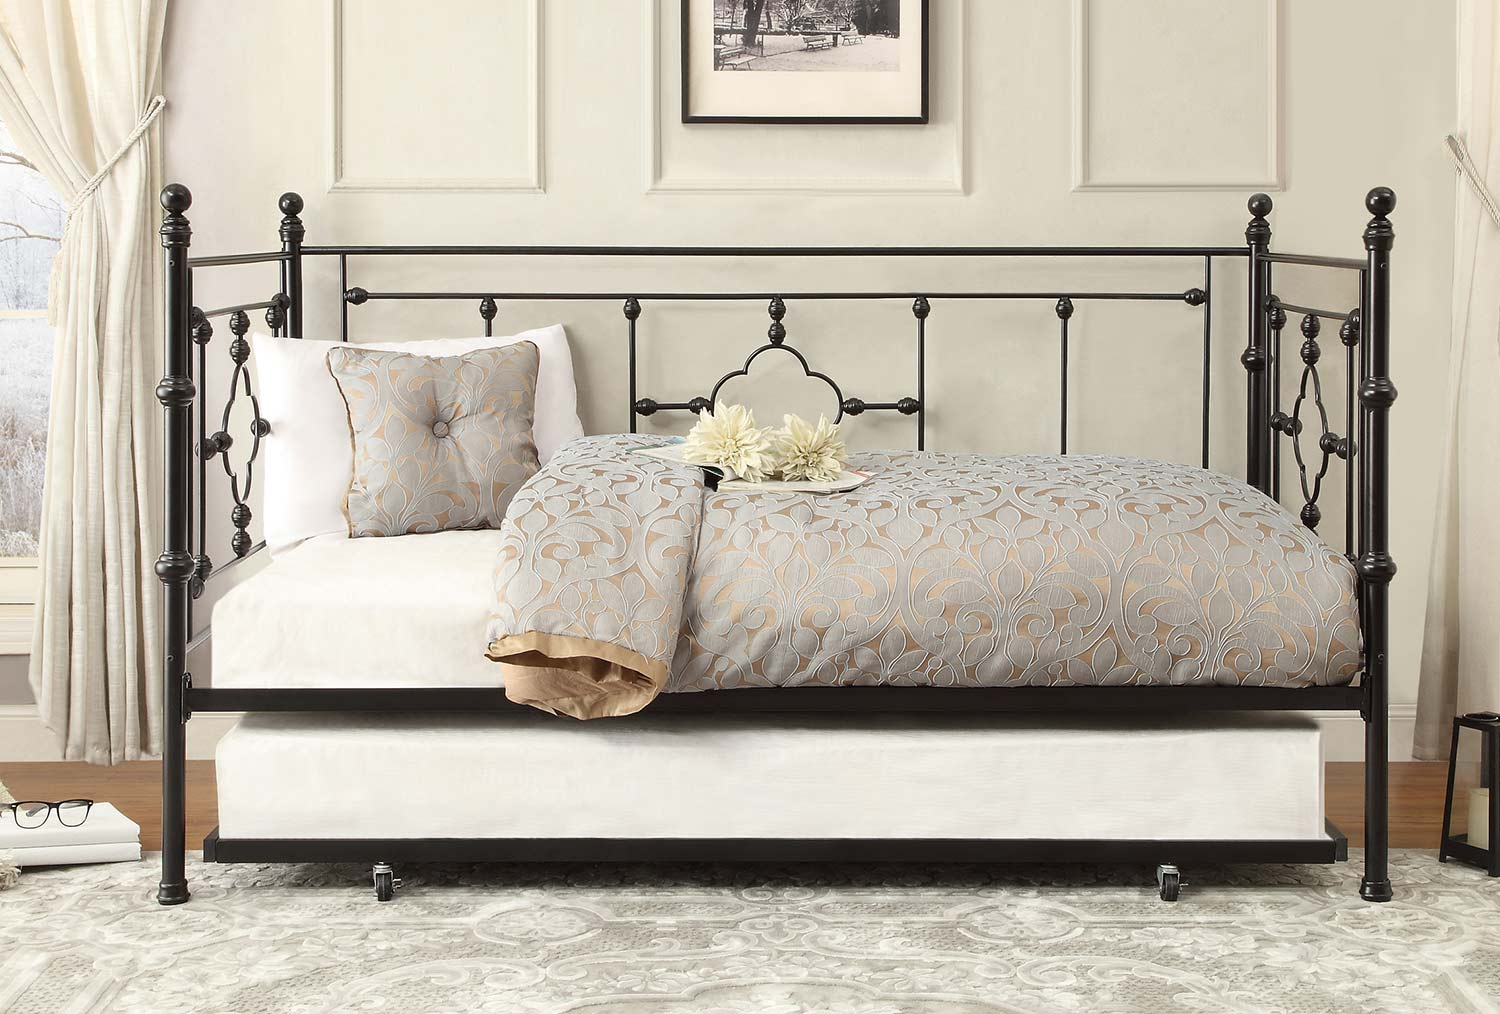 Homelegance Auberon Metal Daybed with Trundle - Black